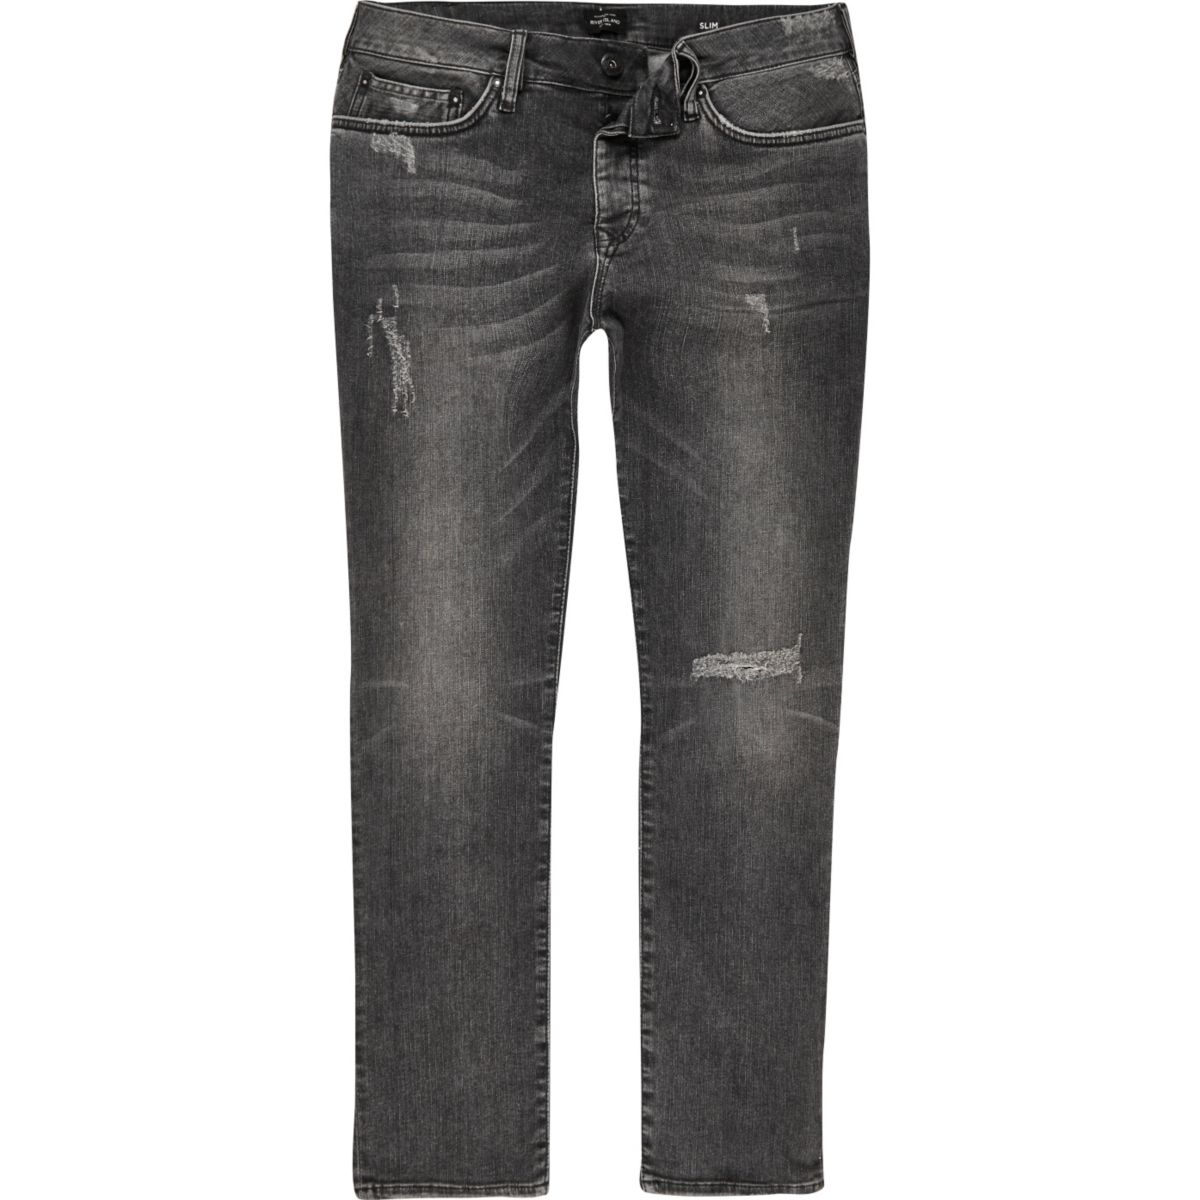 Look awesome in American Eagle Jeans. With jeans in all washes, colors and fits, both men and women are guaranteed to find the perfect pair of jeans at rutor-org.ga